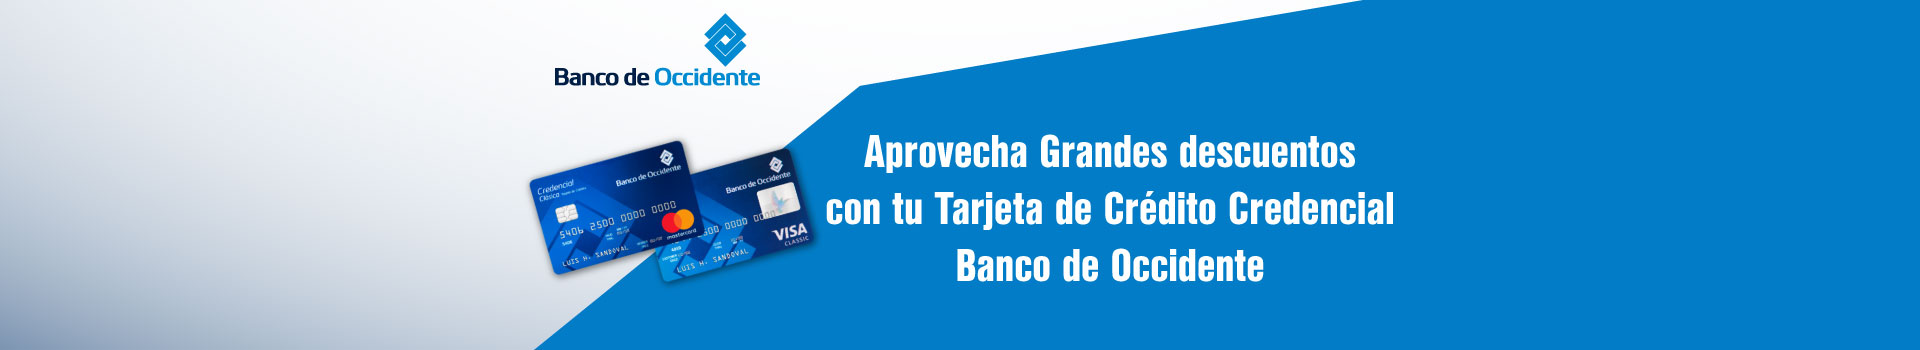 AK-KT-Banco-de-Occidente-General